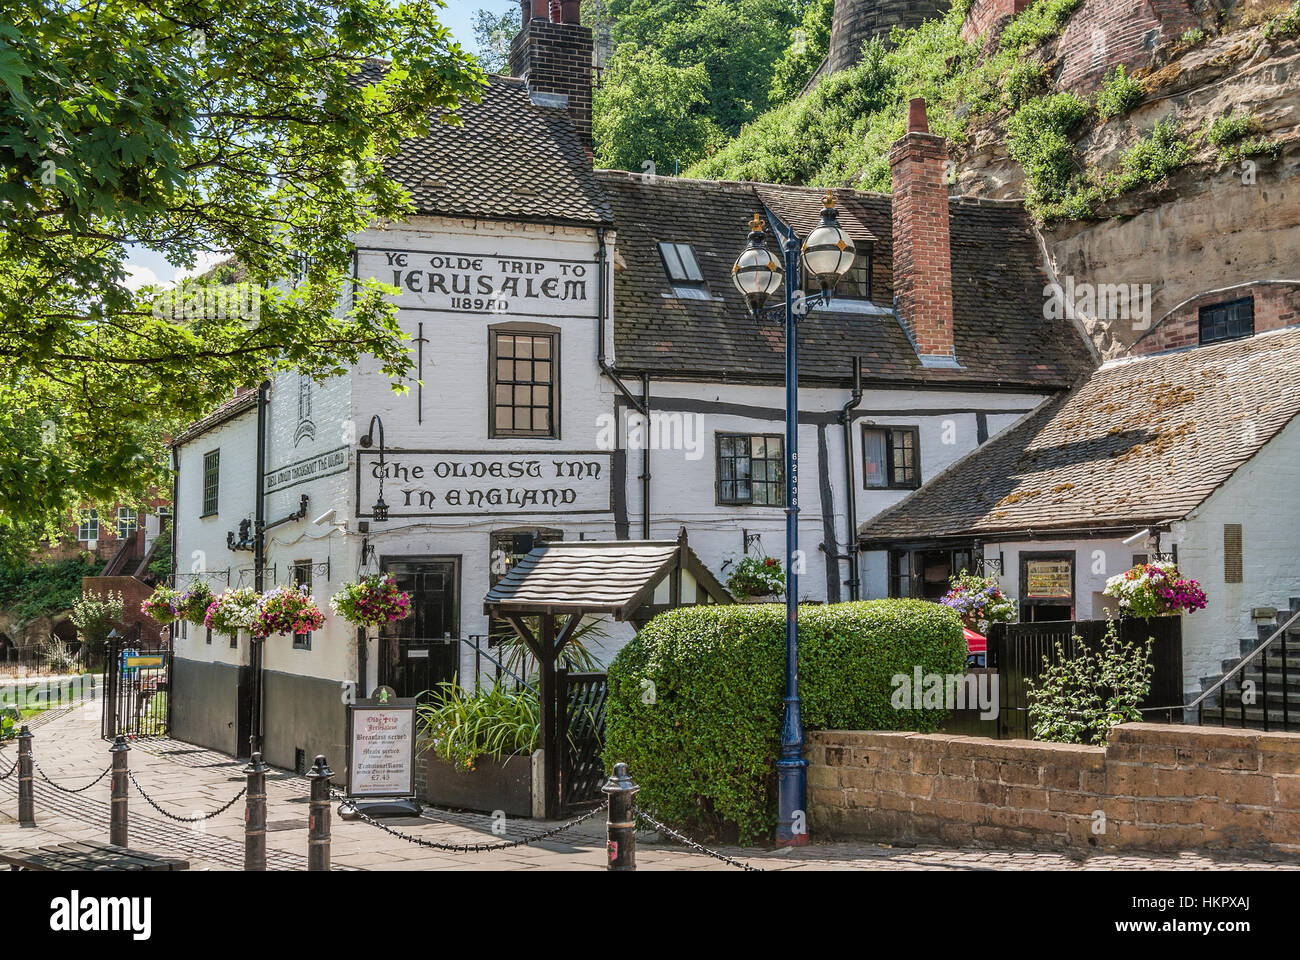 Ye Olde Trip To Jerusalem in Nottingham is one of the 20 public houses (including Ye Olde Salutation Inn and The - Stock Image